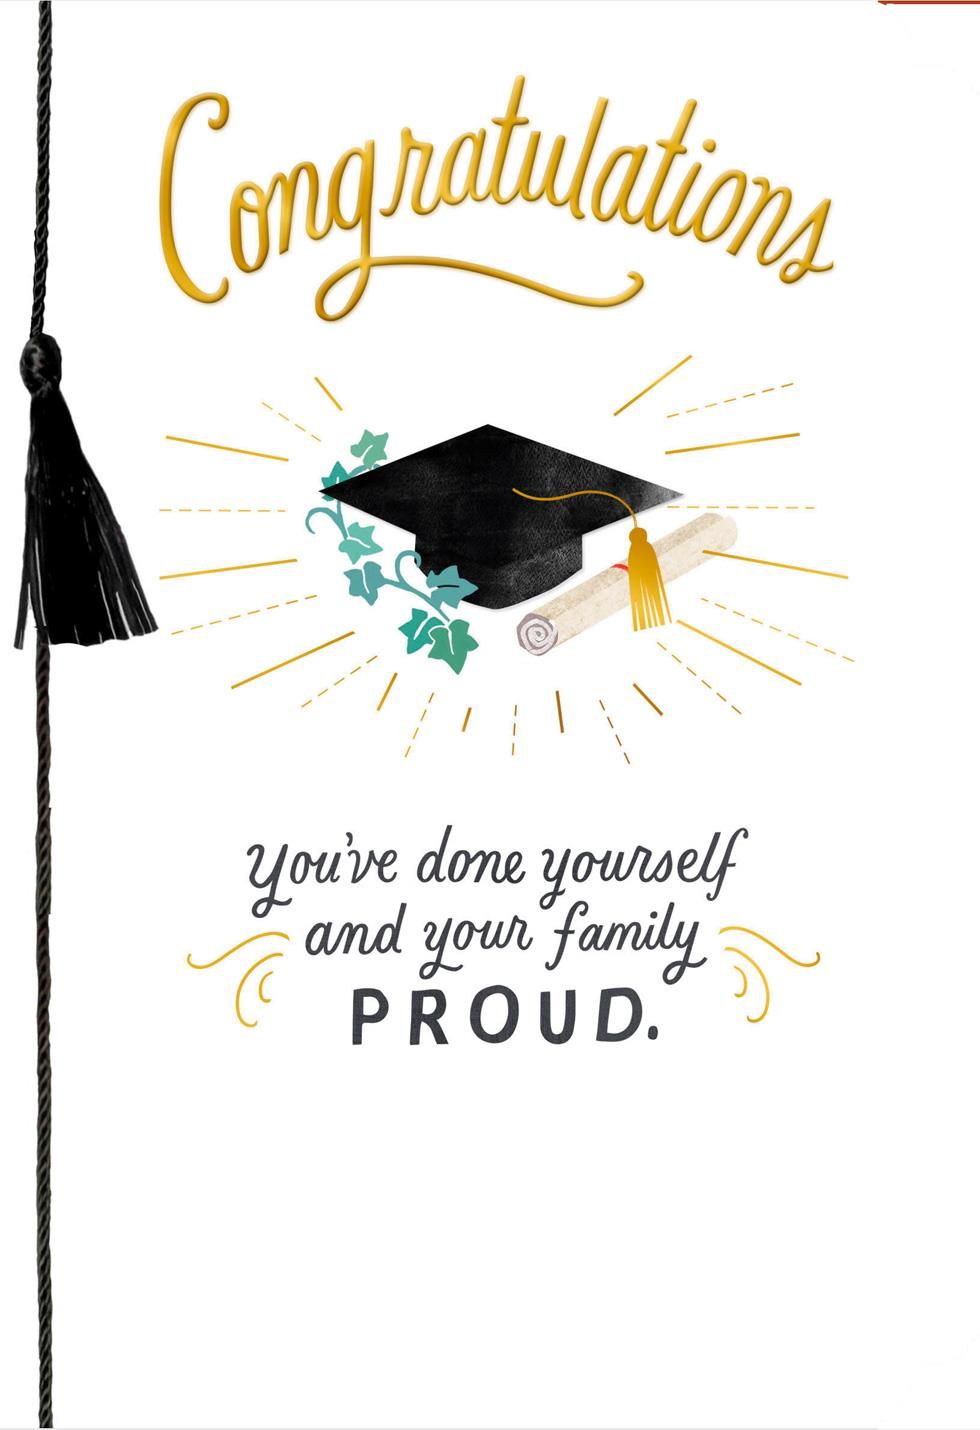 You make the family proud graduation card greeting cards hallmark you make the family proud graduation card m4hsunfo